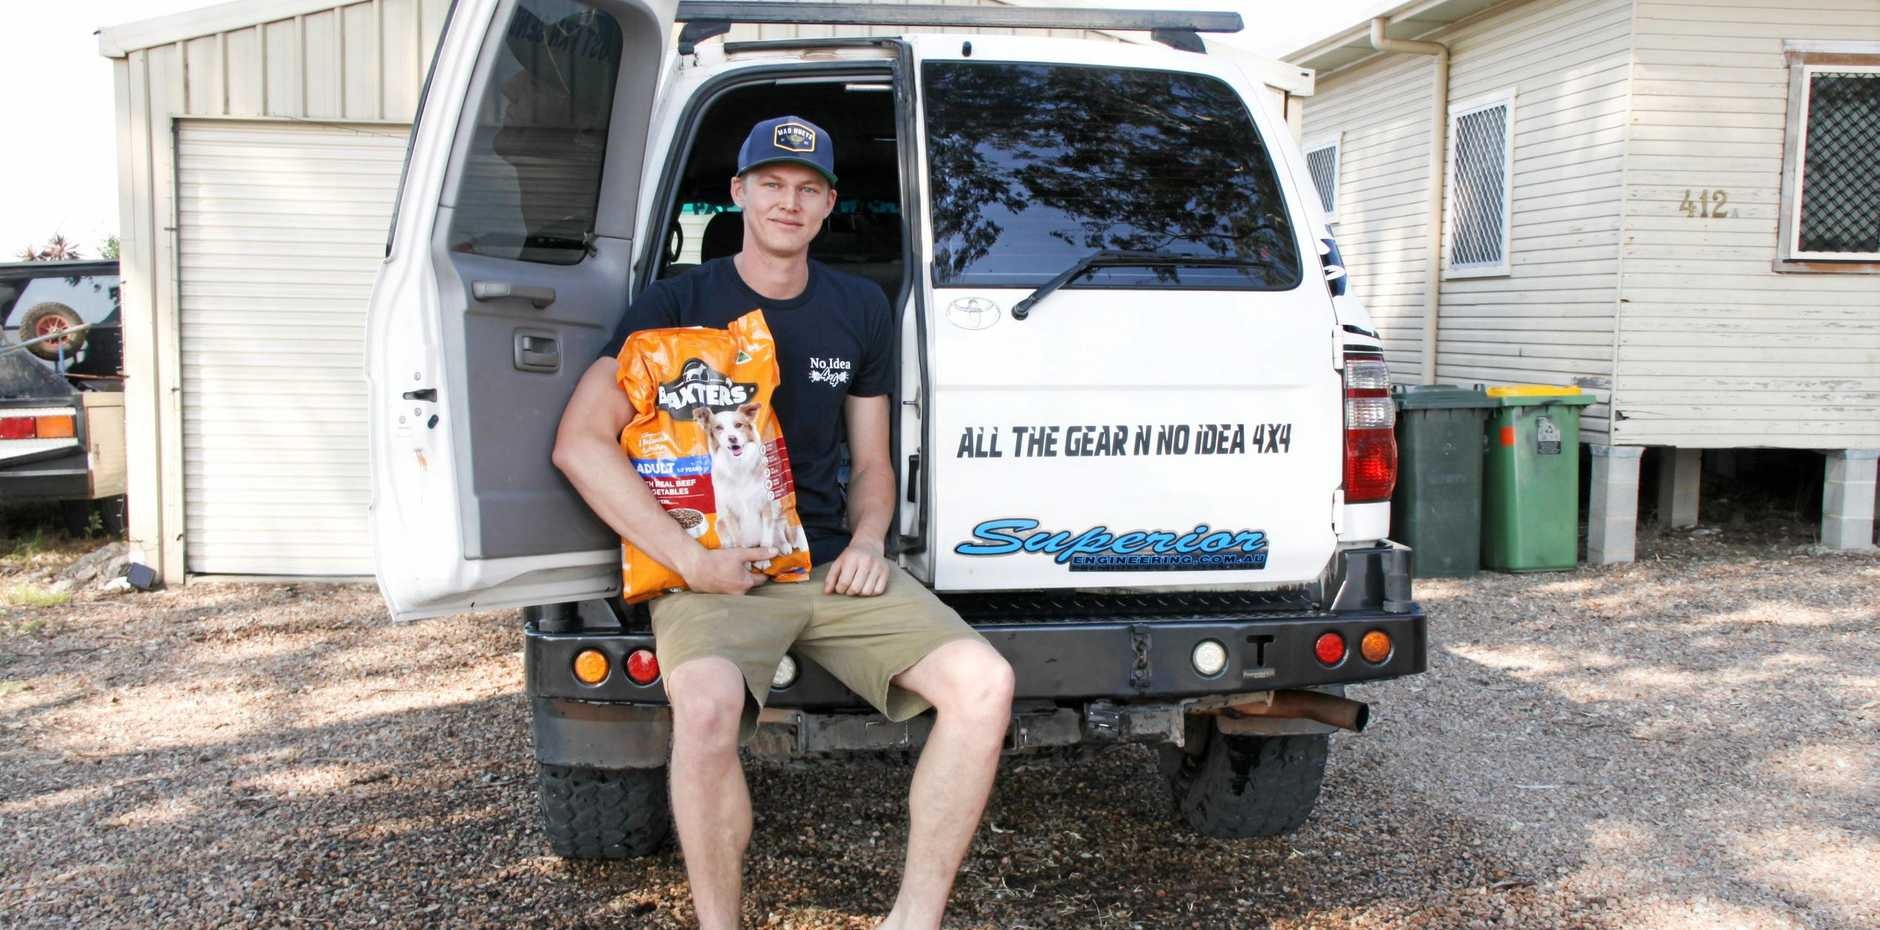 DRAKE FUNDRAISER: Mitchell Dowse, 26,  has created a social media campaign to raise funds to purchase water non-perishables for the residents of Drake who have been impacted by the Long Gully Road Fires over the past 10 days.